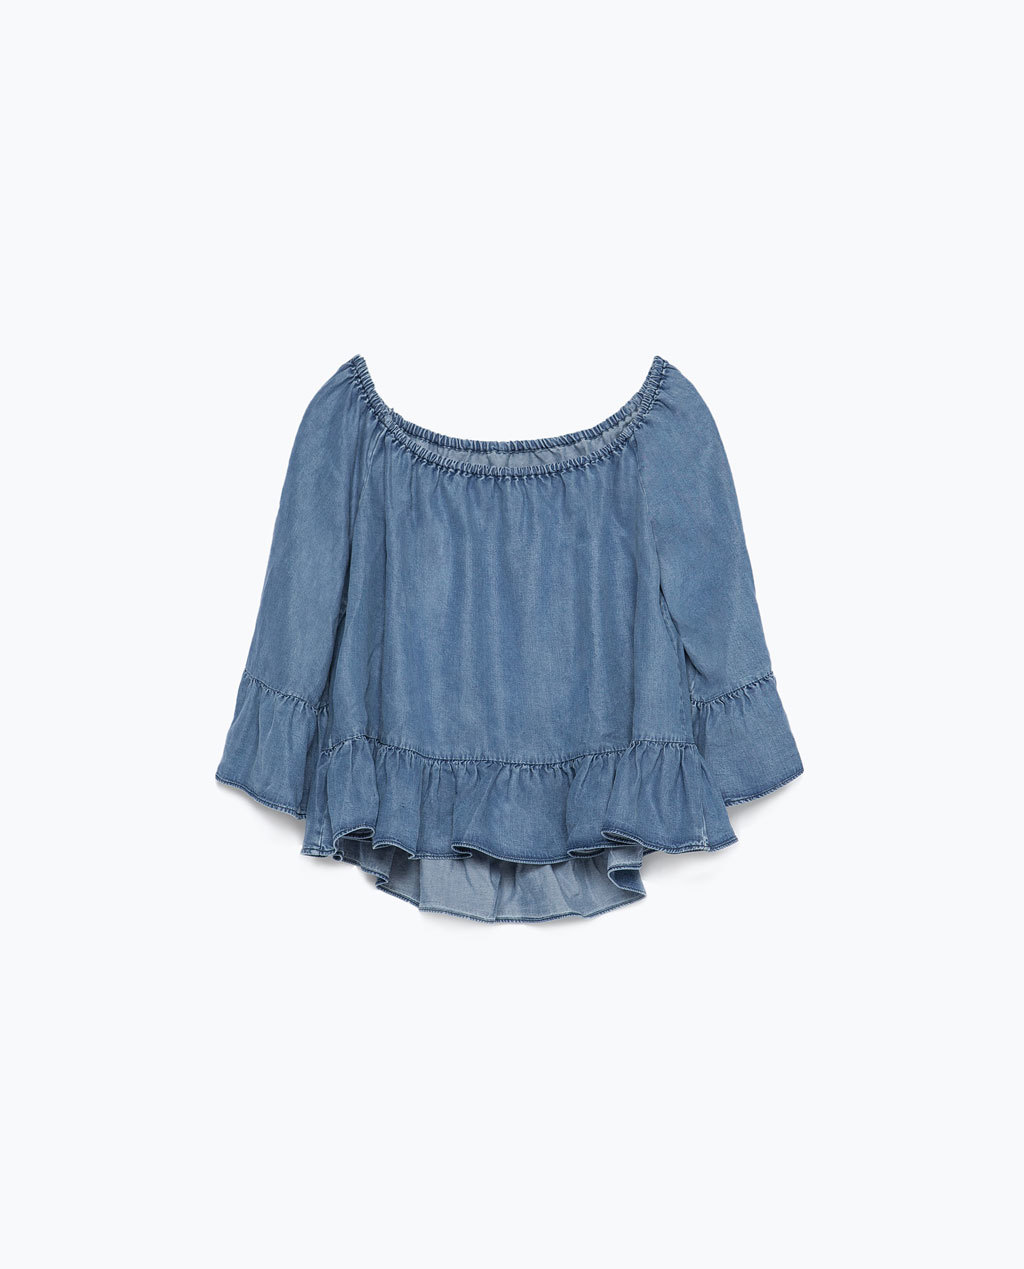 Elasticated Off The Shoulder Top - neckline: off the shoulder; pattern: plain; predominant colour: denim; occasions: casual; length: standard; style: top; fibres: cotton - stretch; fit: loose; sleeve length: 3/4 length; sleeve style: standard; texture group: denim; pattern type: fabric; season: s/s 2015; wardrobe: highlight